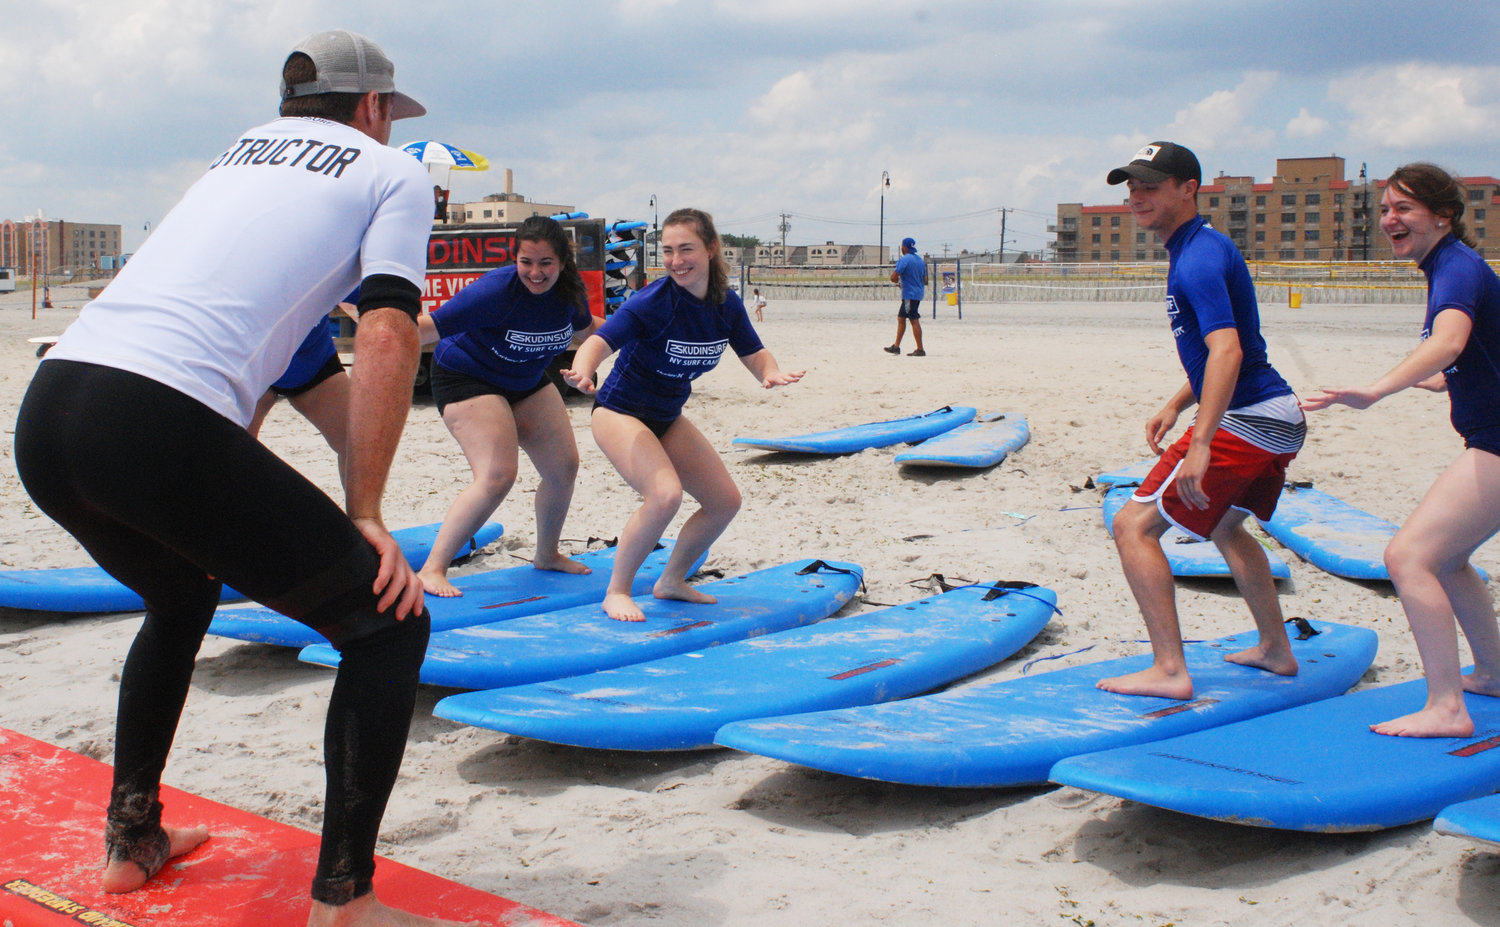 Last year, the Herald took our interns and staff surfing. The Herald crew began their lesson by learning how to steady themselves on their boards. At left were, at front, instructor Ian Skudin, and from left, Herald staffers Alyssa Seidman and Bridget Downes, intern Frank Gargano, and staffer Melissa Koenig.